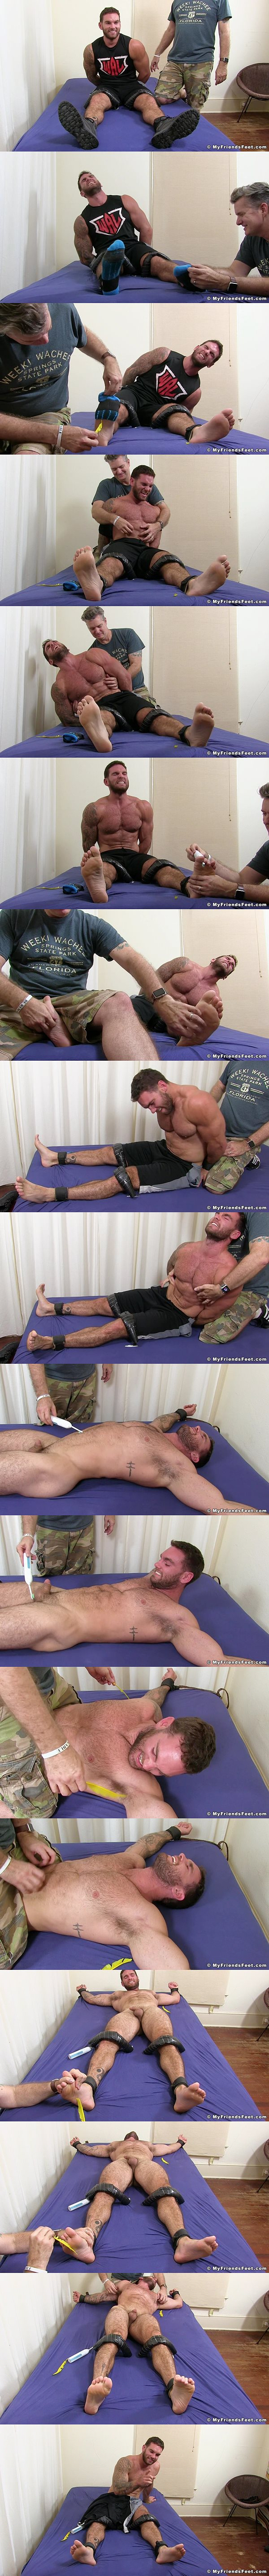 Hot hairy muscle bear Chase Lachance comes backs for an intense tickle torture at Myfriendsfeet 02